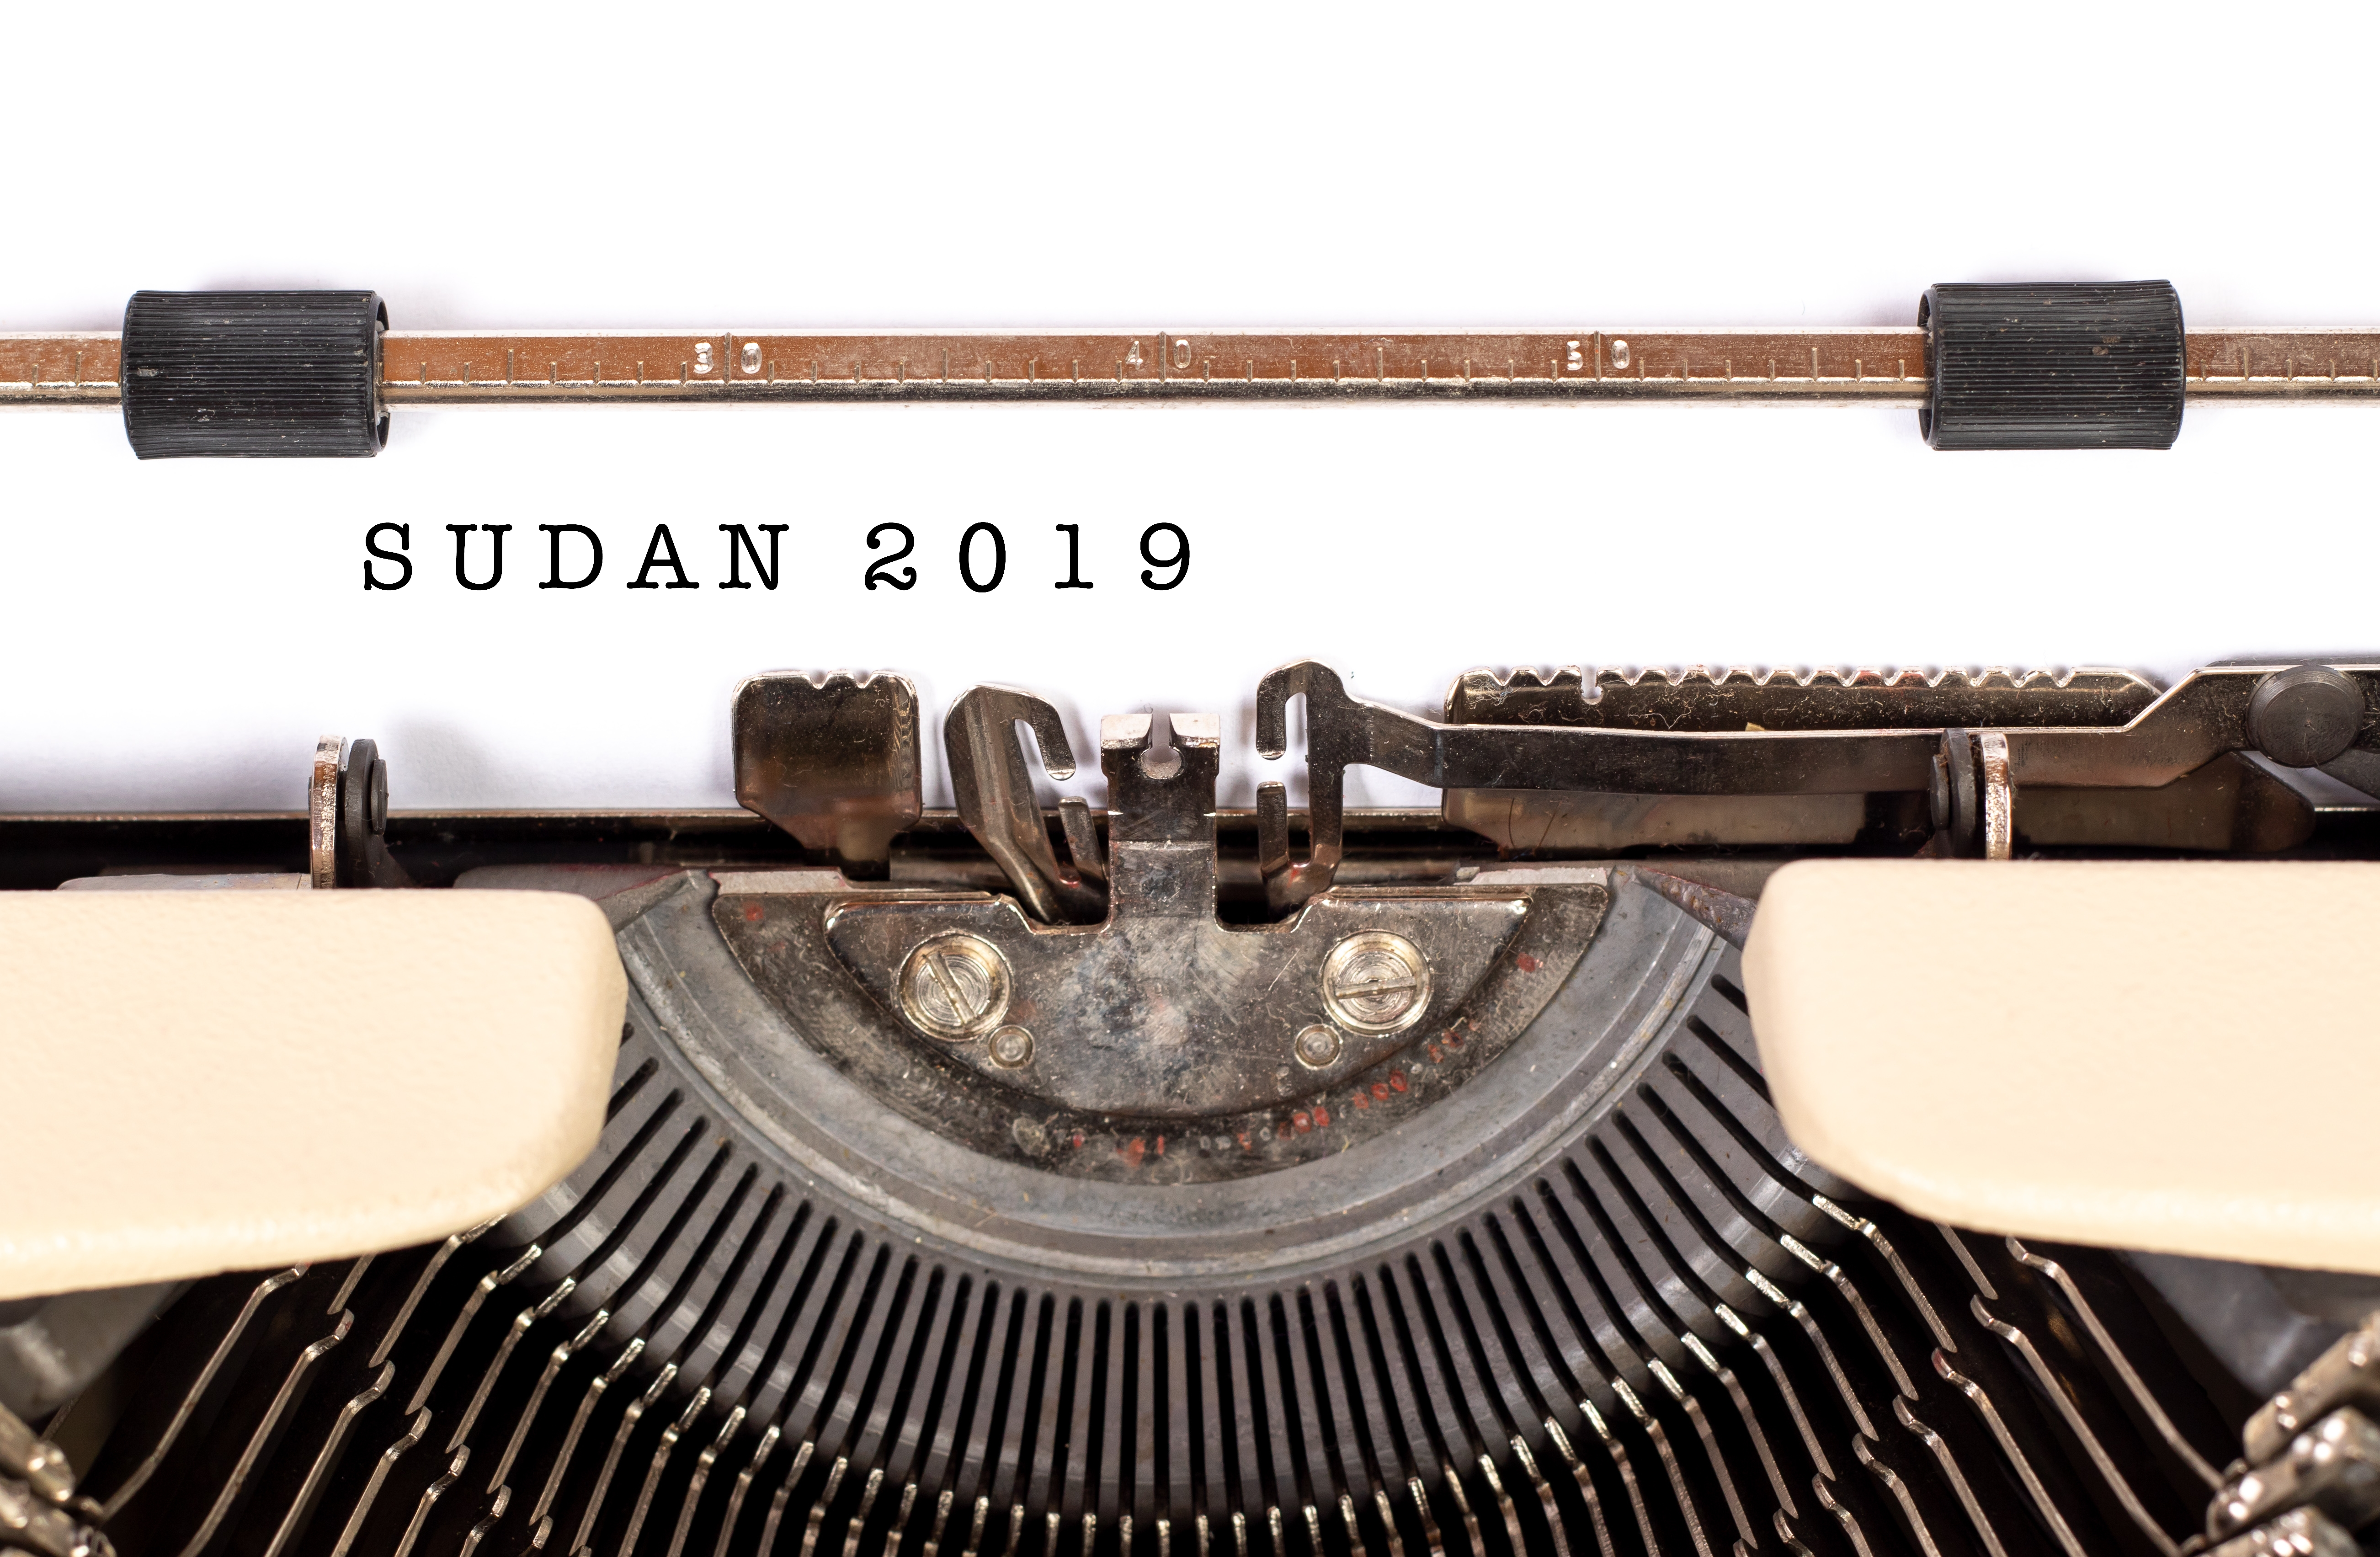 Big change comes to Sudan; what does it mean to Christians?